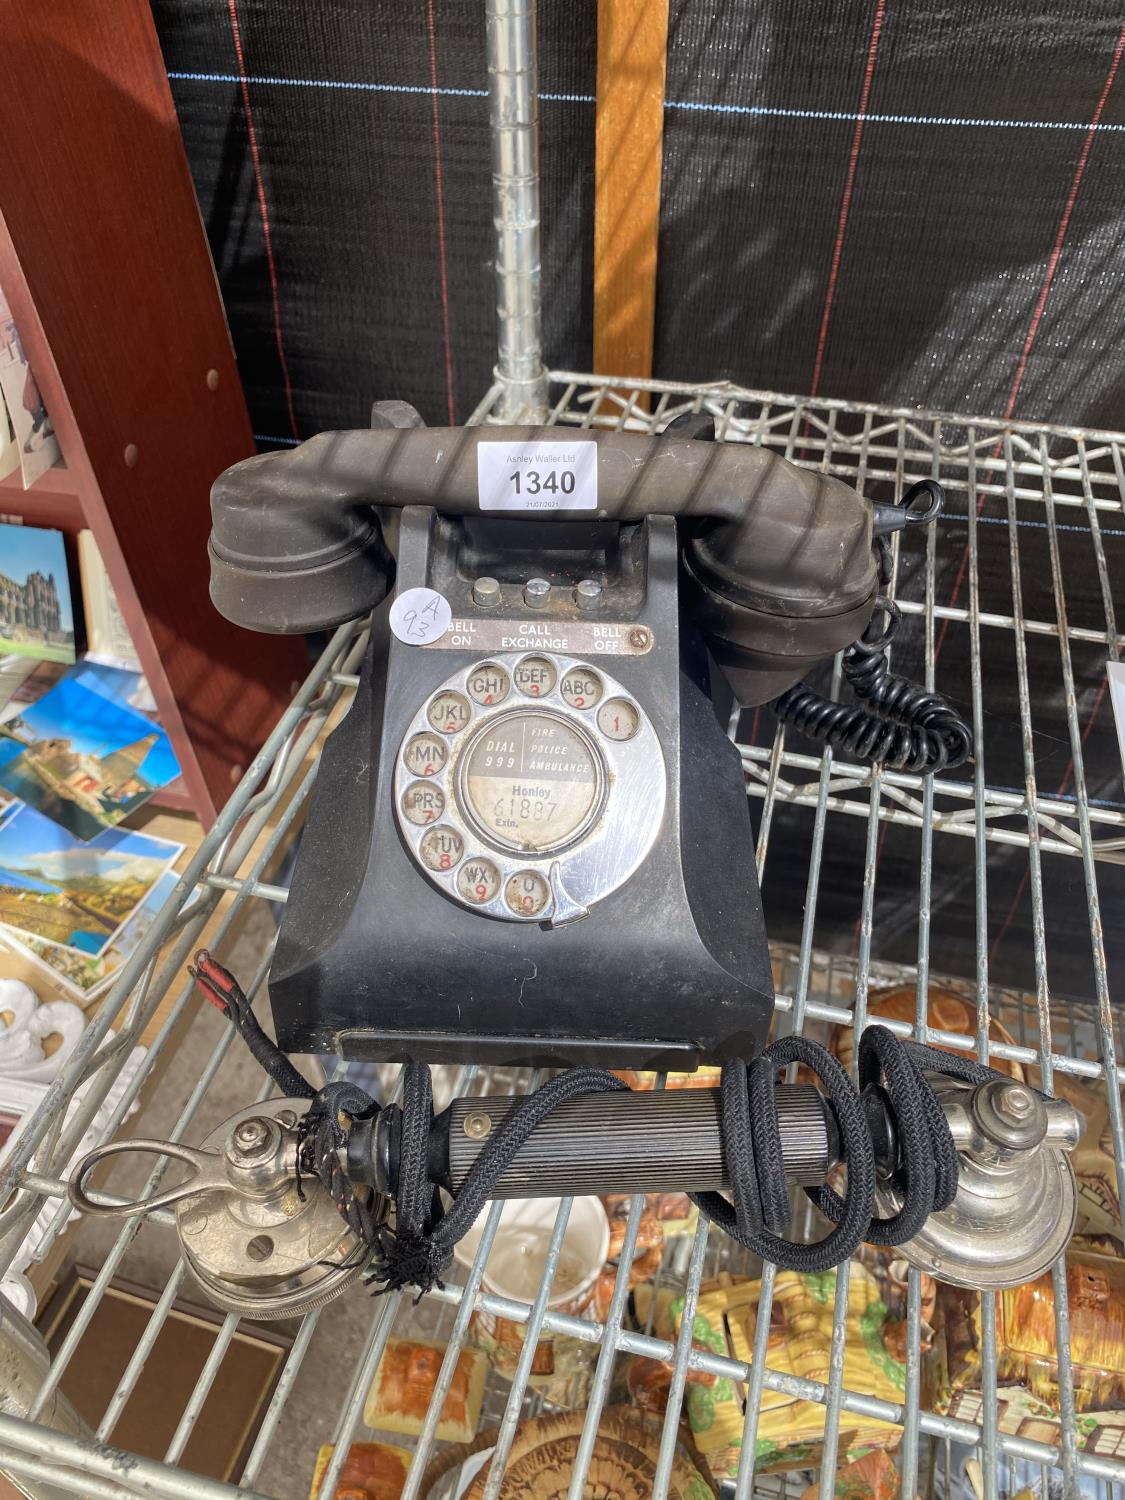 A VINTAGE TELEPHONE AND A FURTHER TELPHONE RECIEVER